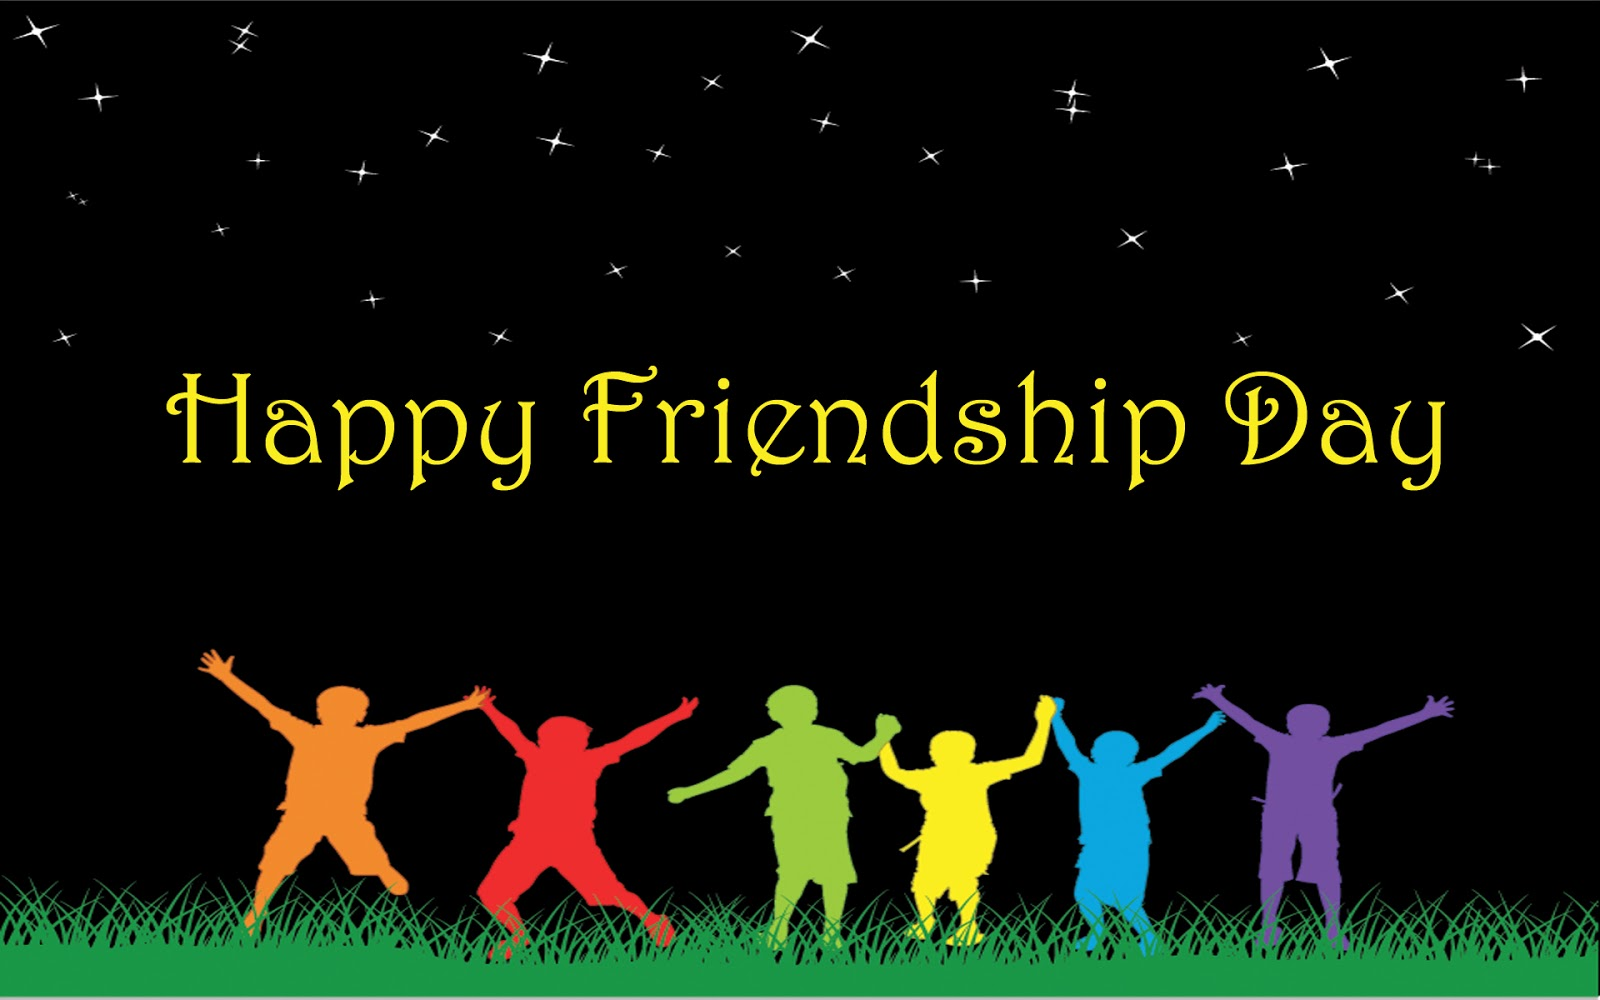 Happy Friendship Day 2015 Images Happy Friendship Day